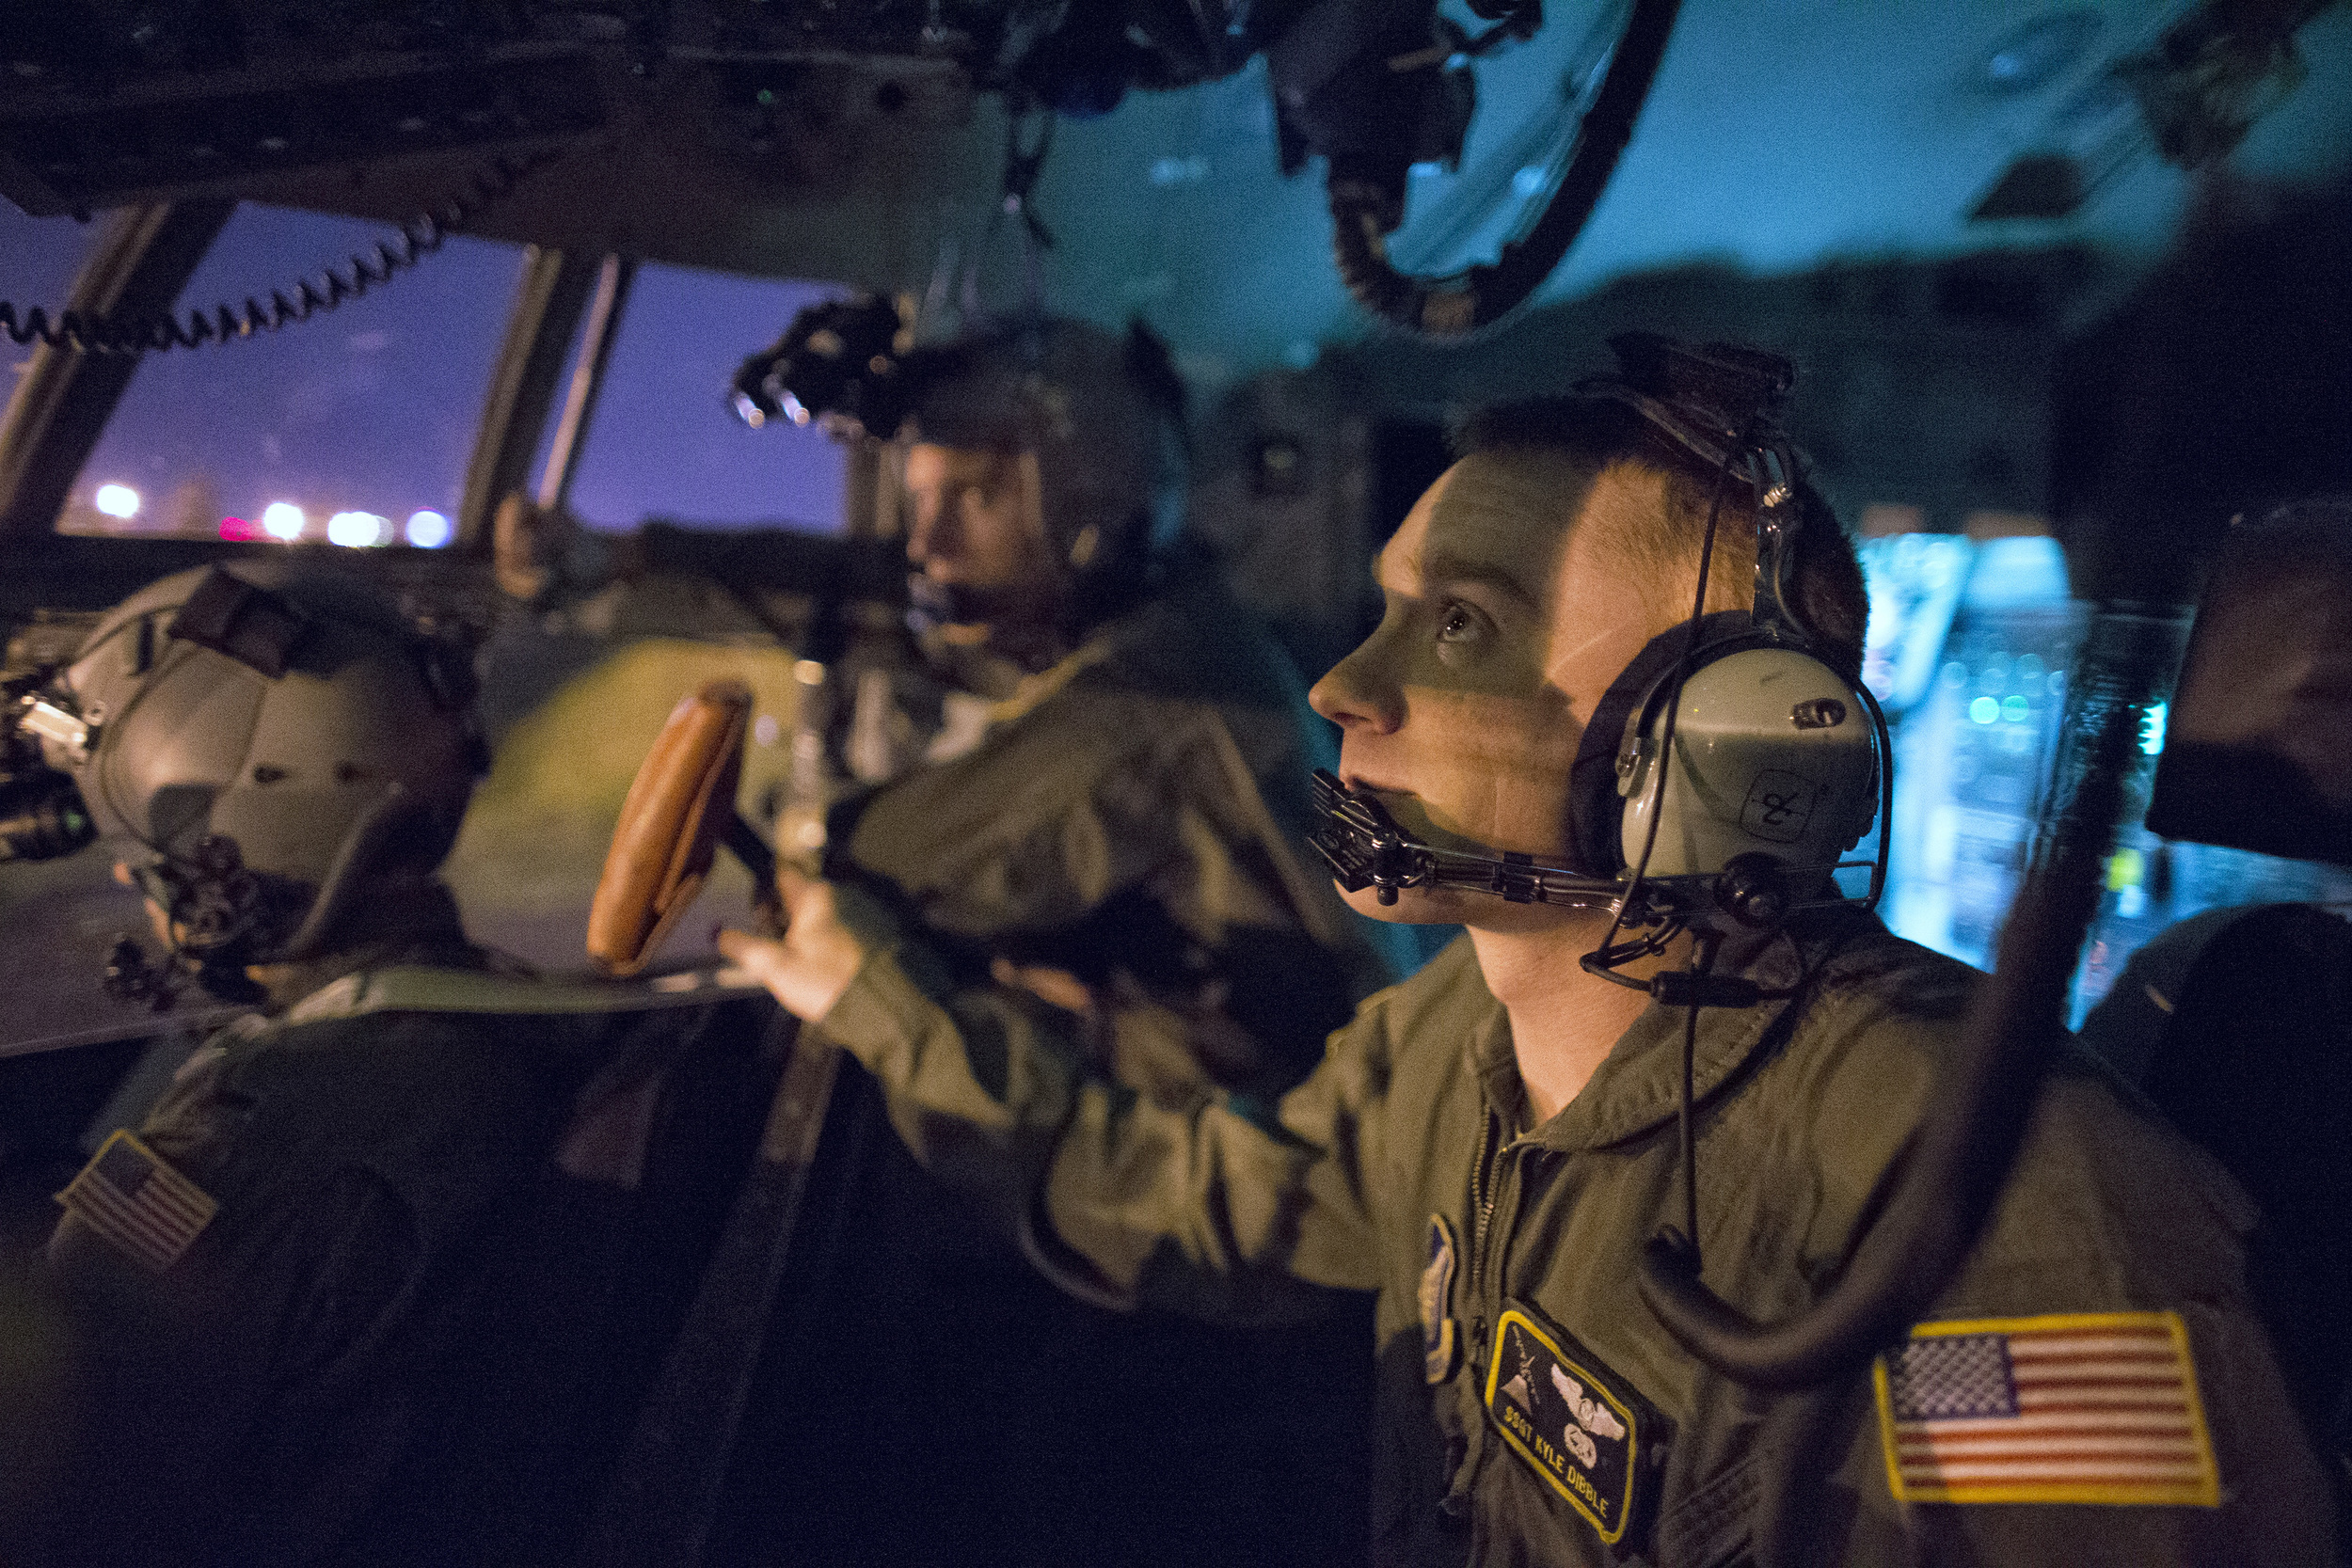 Staff Sgt. Kyle Dibble, 36th Airlift Squadron flight engineer, performs pre-flight inspection at Yokota Air Base, Japan, Oct. 14, 2015, during a training mission. Yokota aircrews regularly conduct night flying operations to ensure they're prepared to respond to a variety of contingencies throughout the Indo-Asia Pacific region. (U.S. Air Force photo by Osakabe Yasuo/Released)